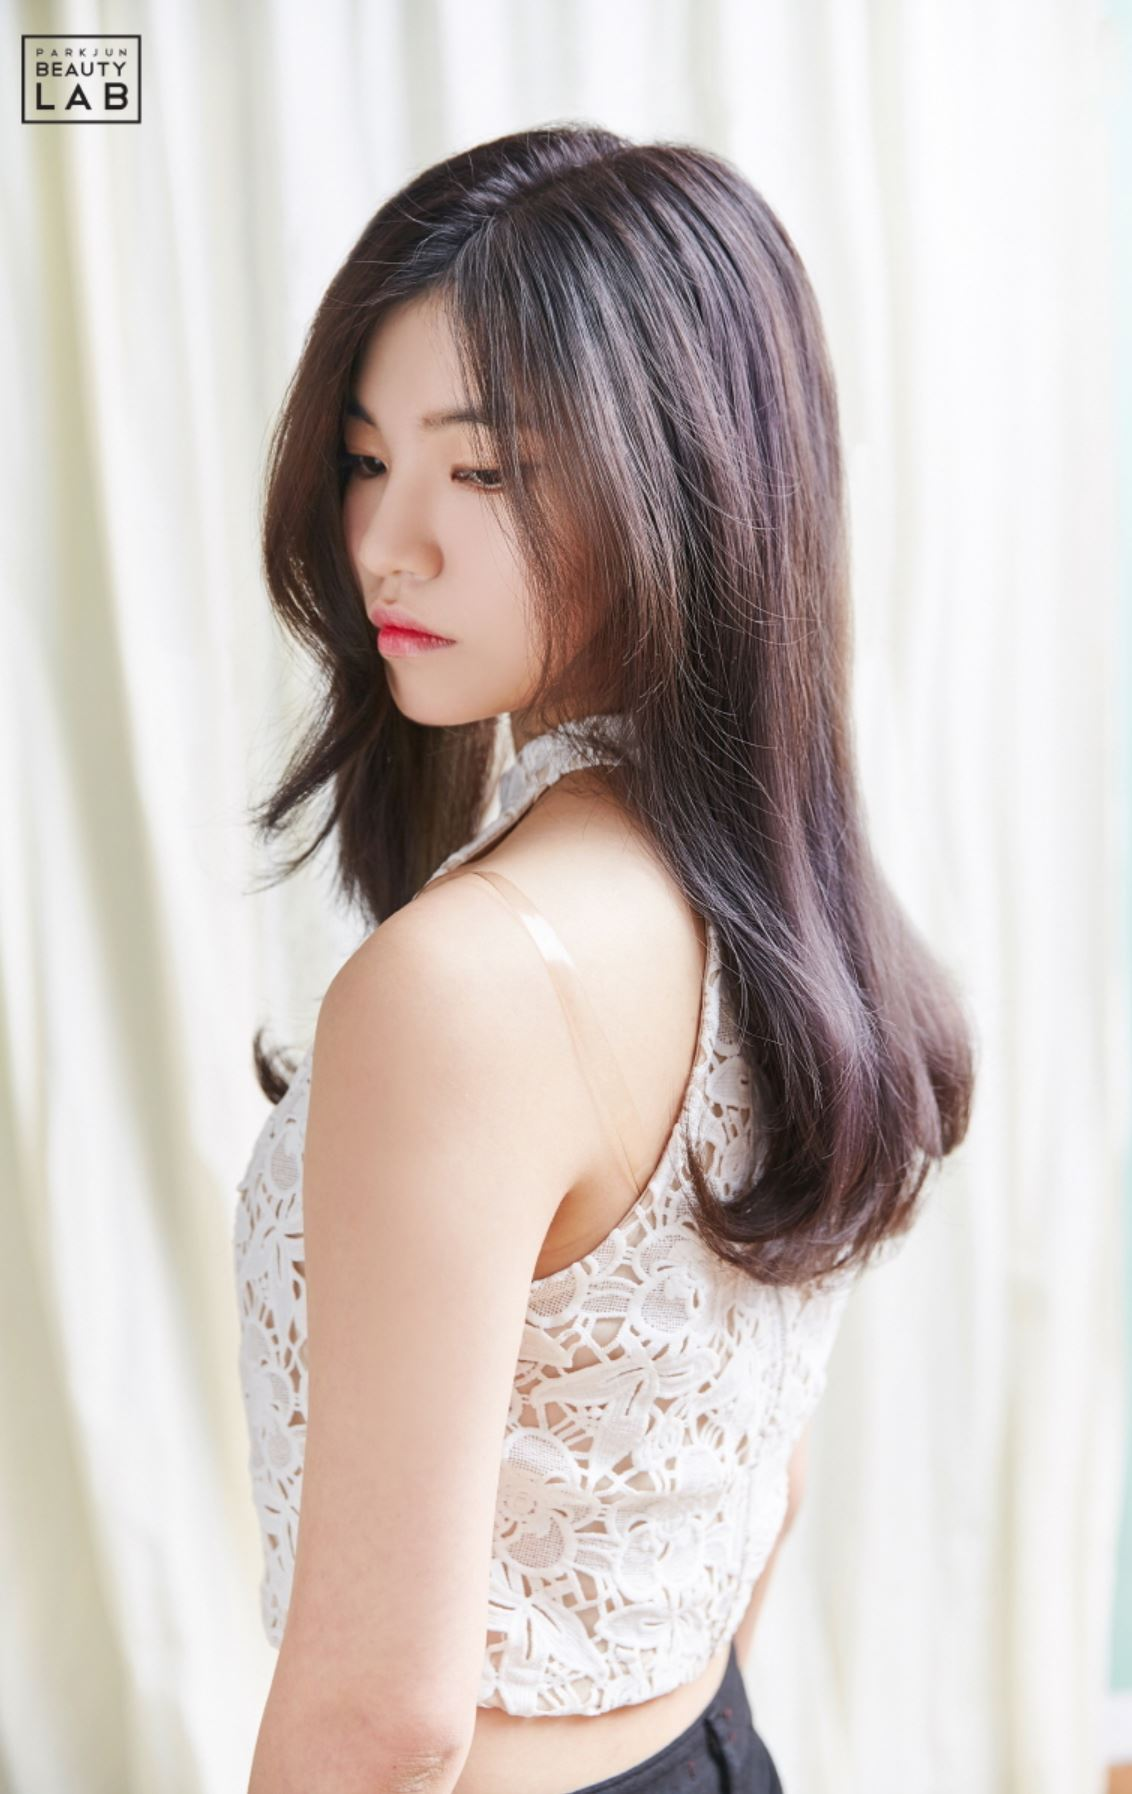 Park Jun Korean Hair Salon Straight Perm Color Wedding